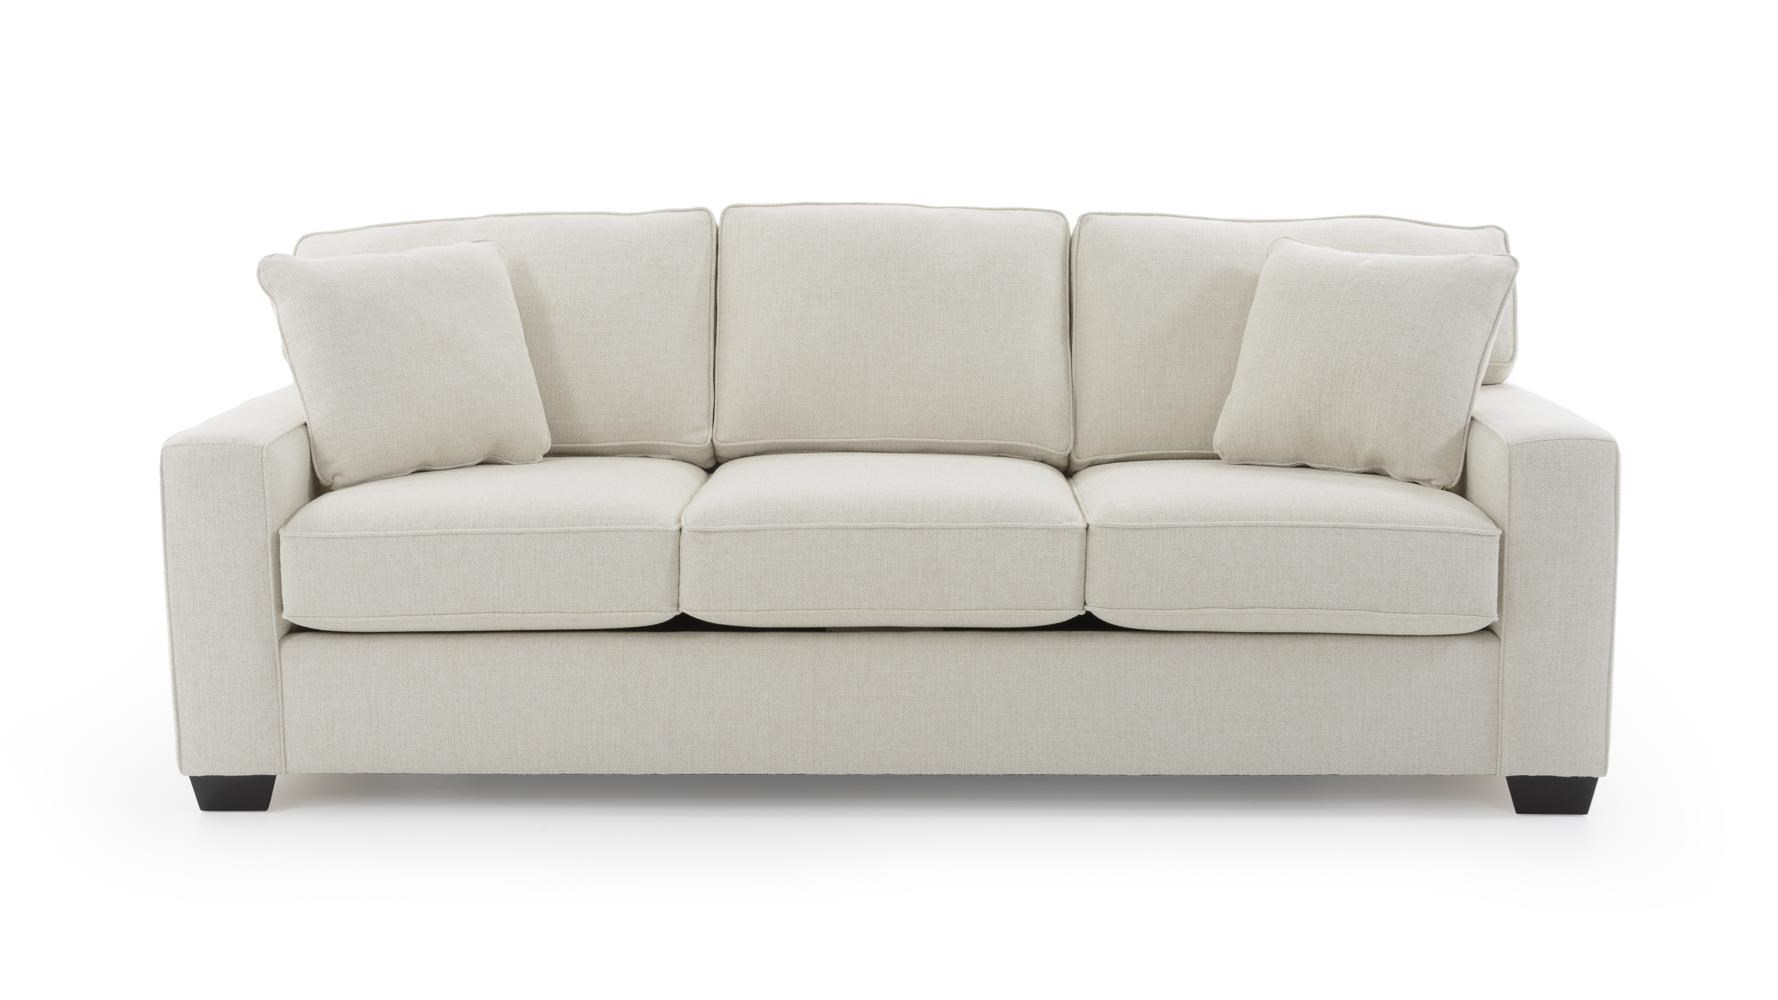 Bermuda Sofa Bed Super Queen by Max Home at Baer's Furniture